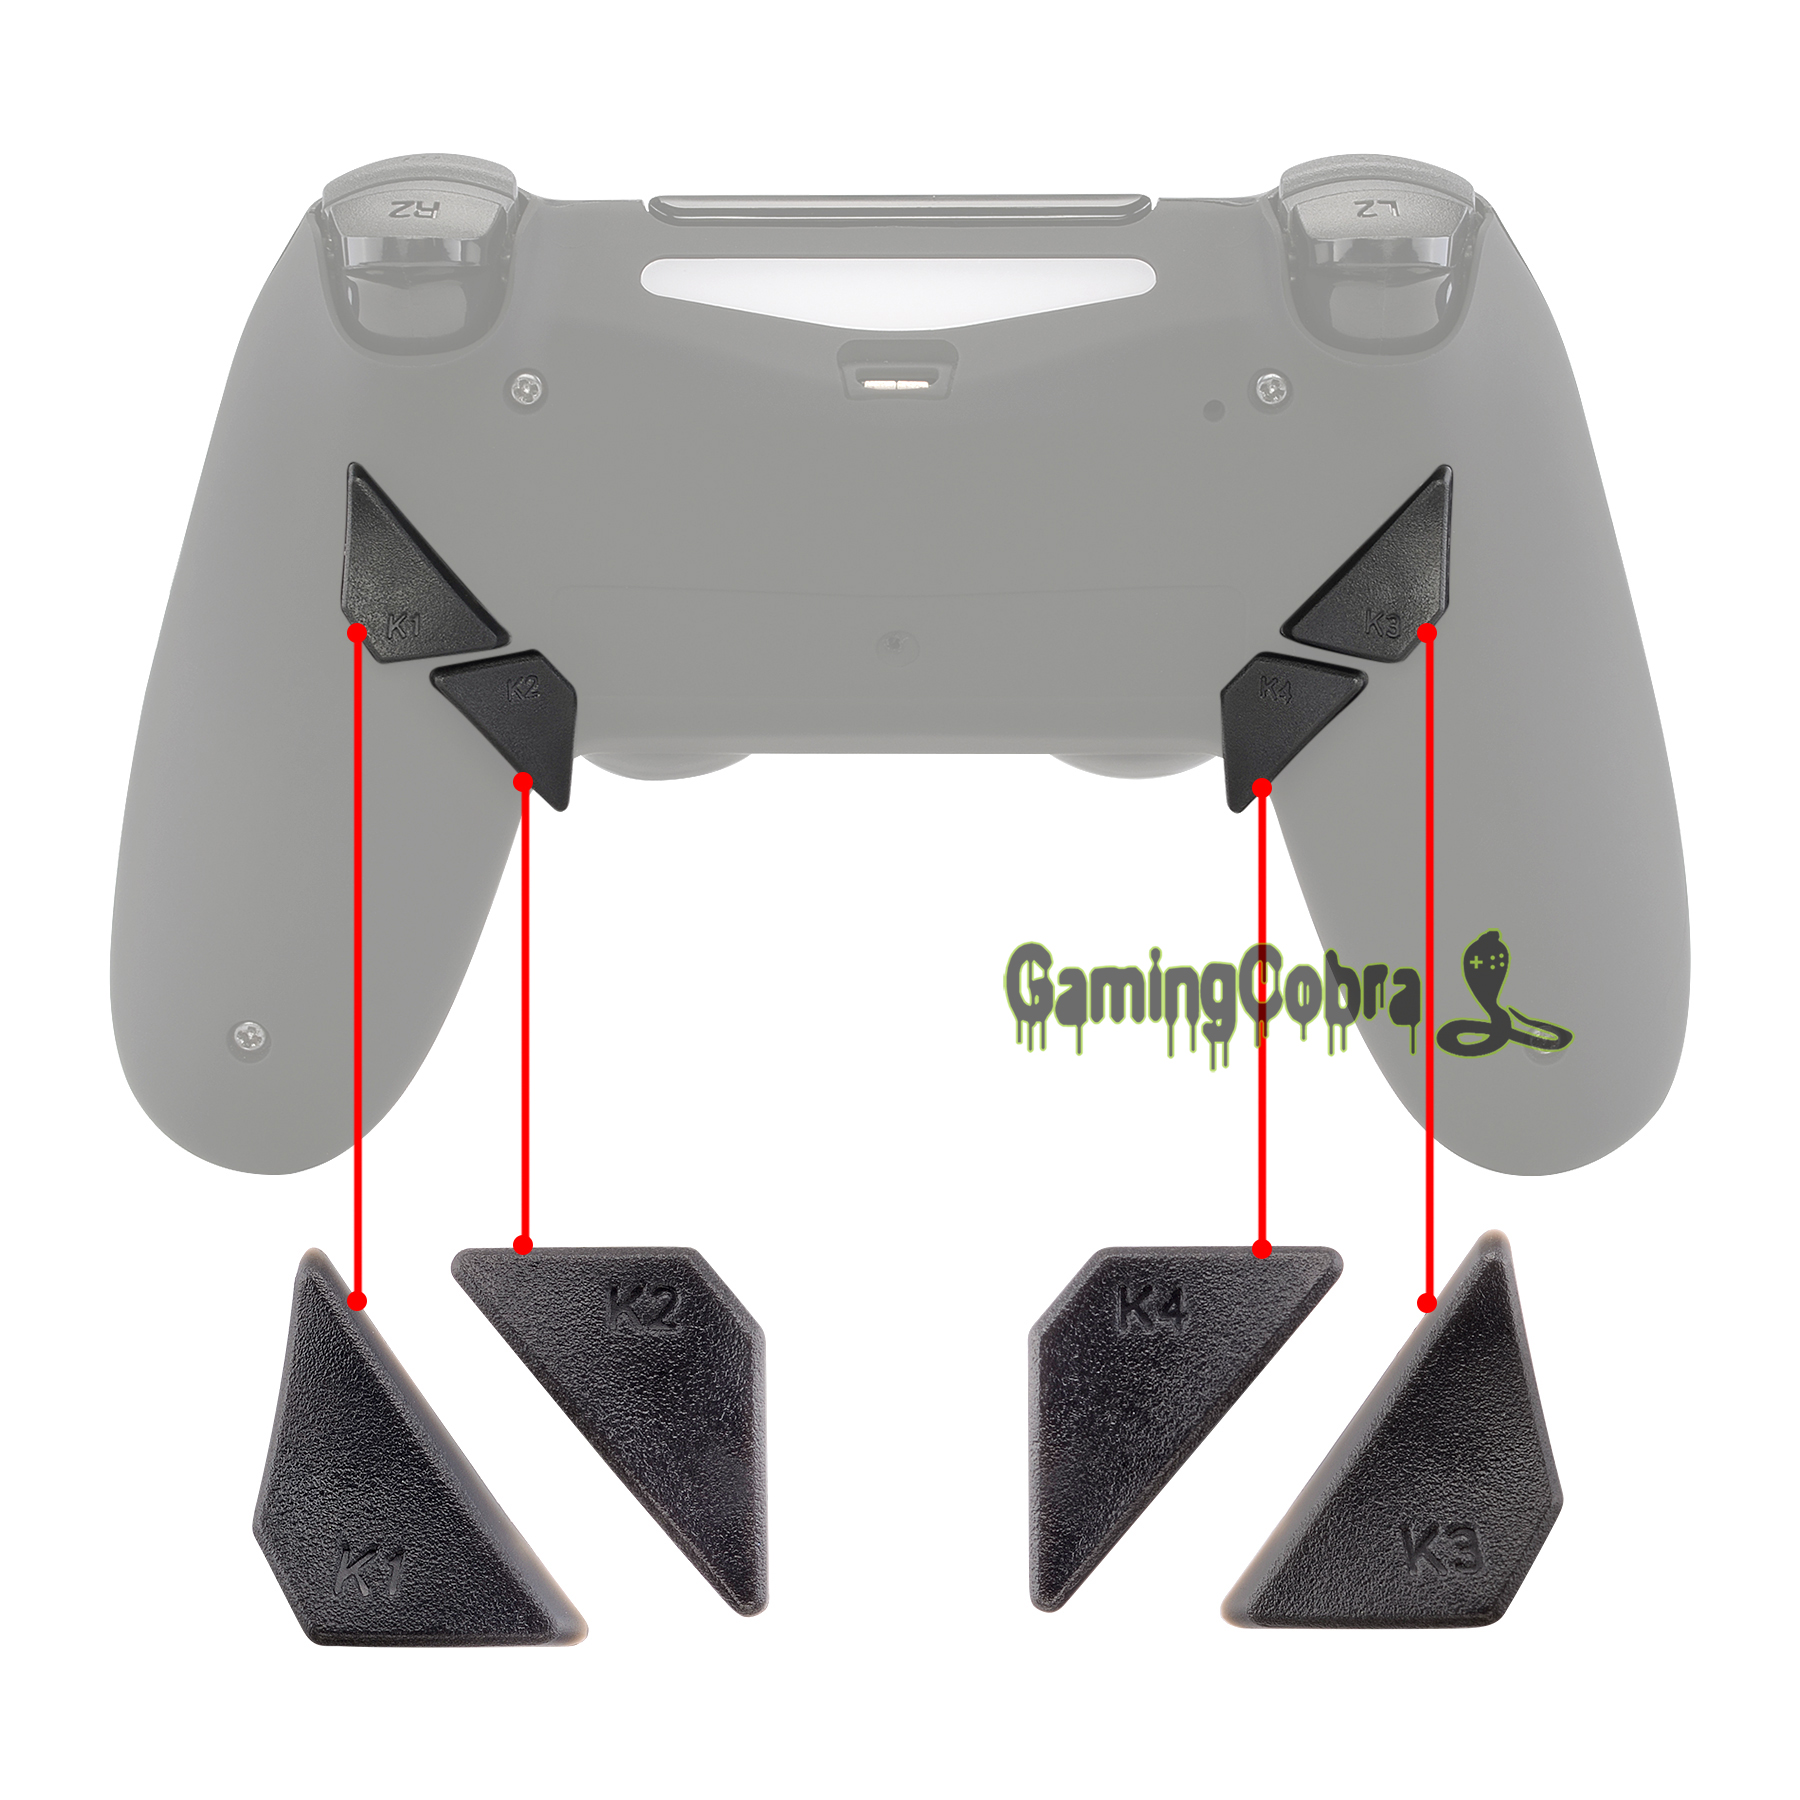 Solid Gray Replacement Redesigned Back Buttons K1 K2 K3 K4 Paddles For EXtremeRate PS4 Controller DAWN Remap Kit